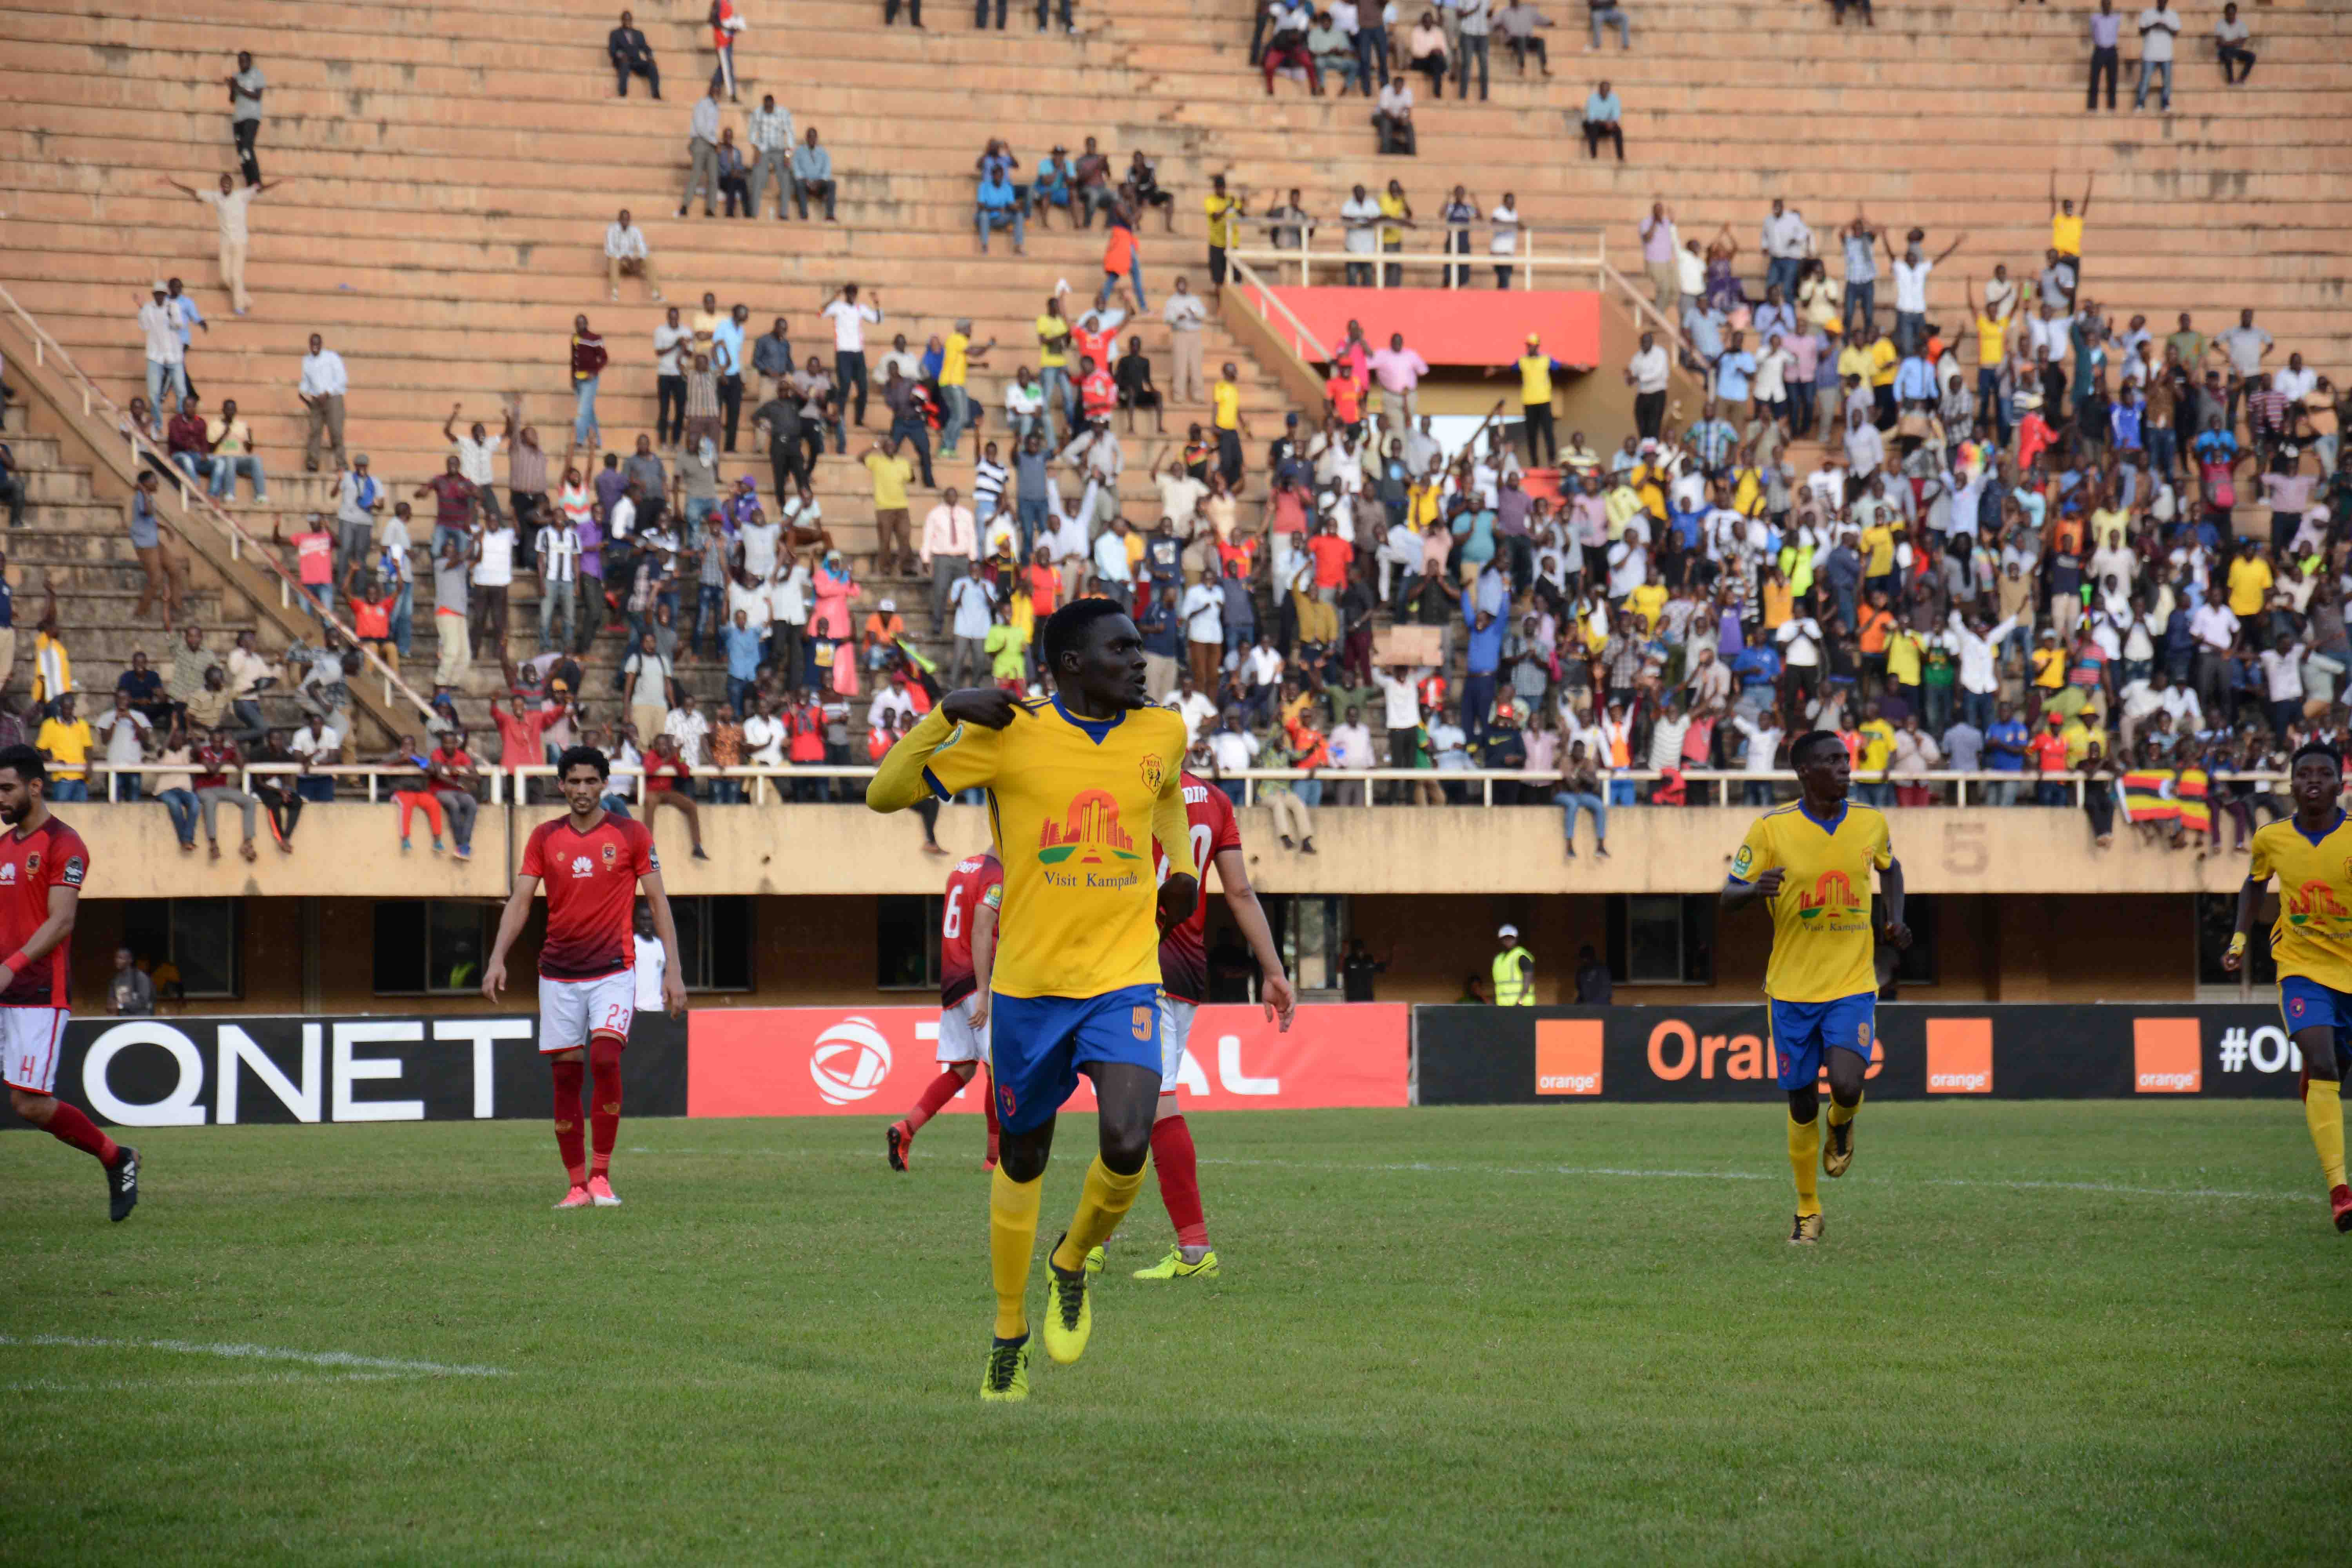 Timothy Awanyi celebrating after converting a penalty against Al Ahly